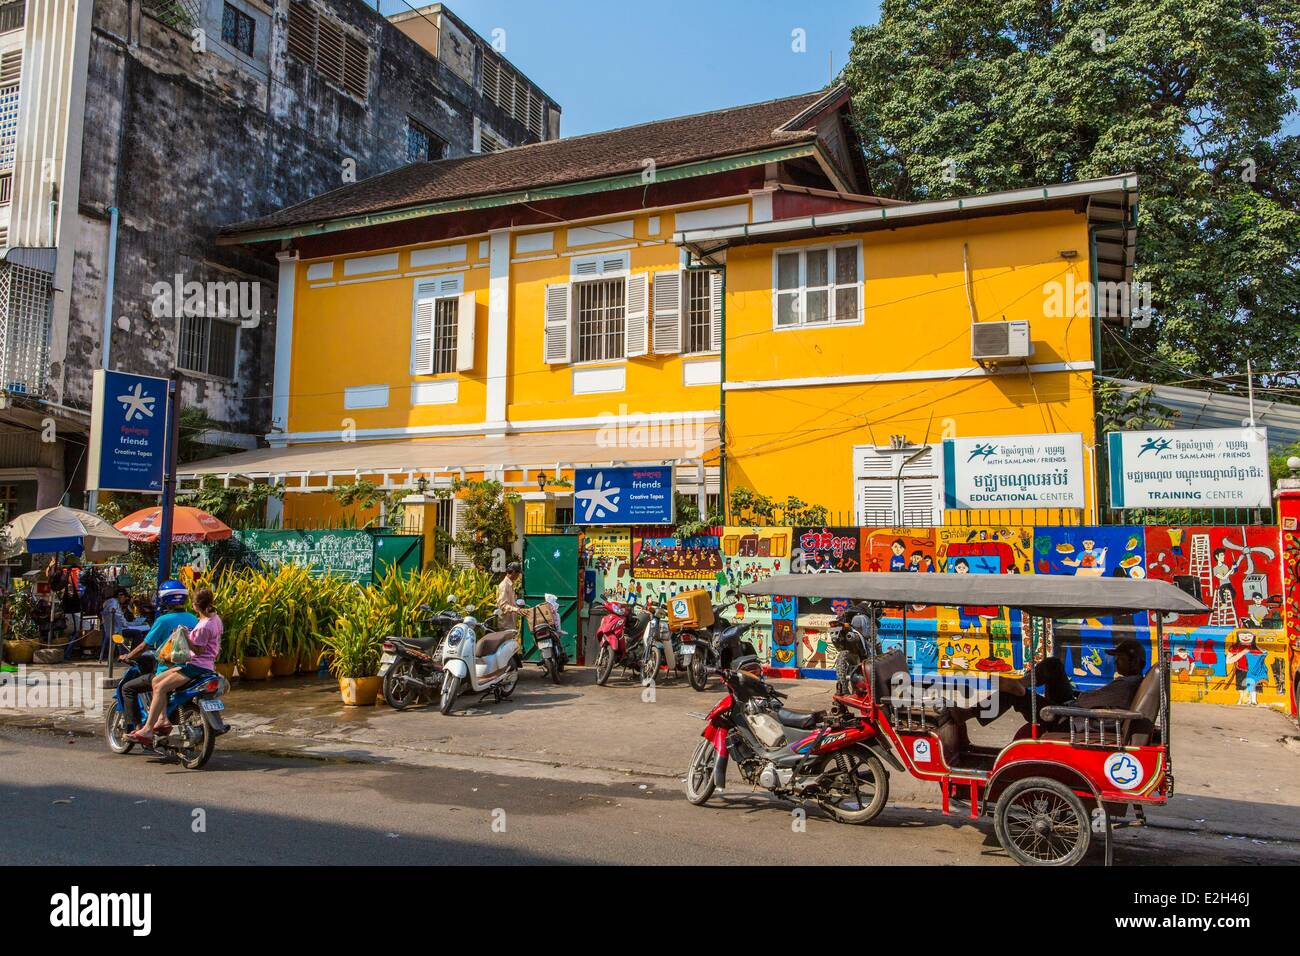 Cambodia Phnom Penh Friends restaurant run by a charitable organization training young people for careers in tourism - Stock Image